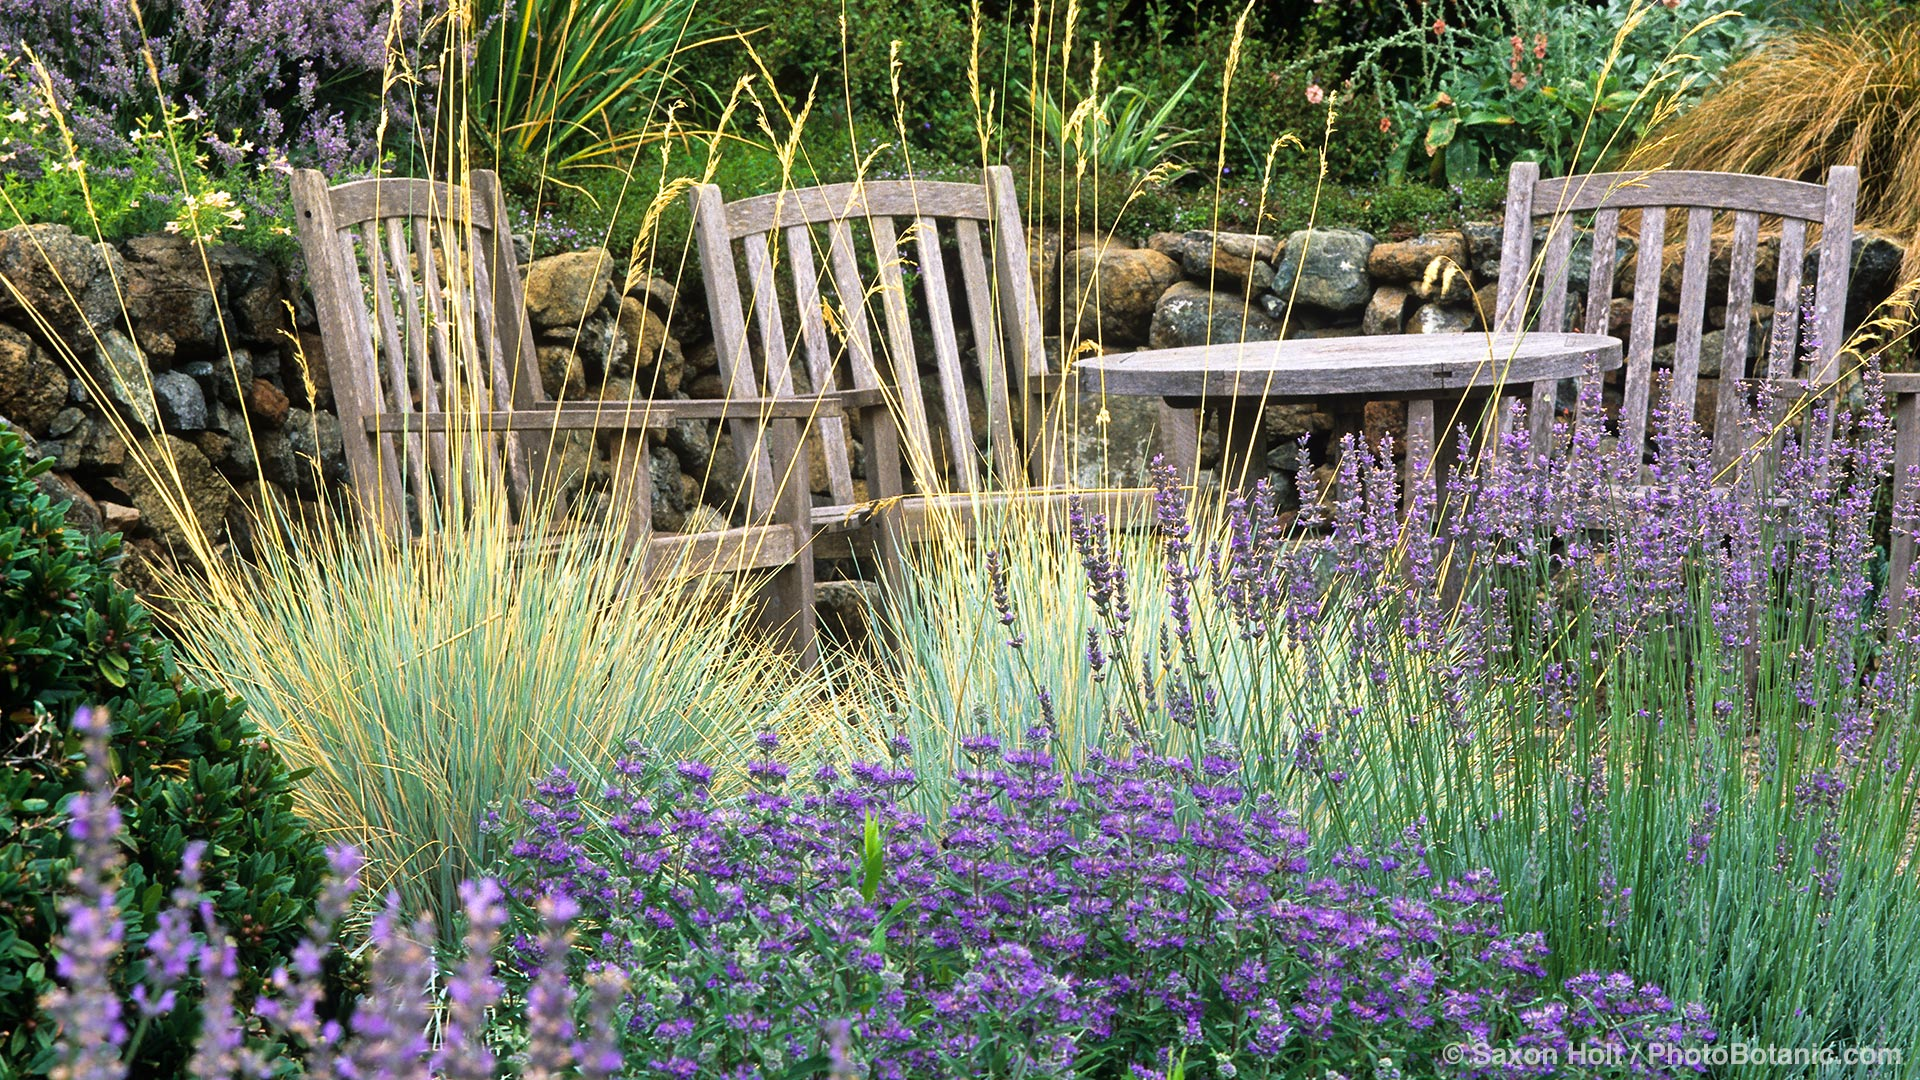 Helictotrichon sempervirens (Blue Oat Grass) in California garden with chairs